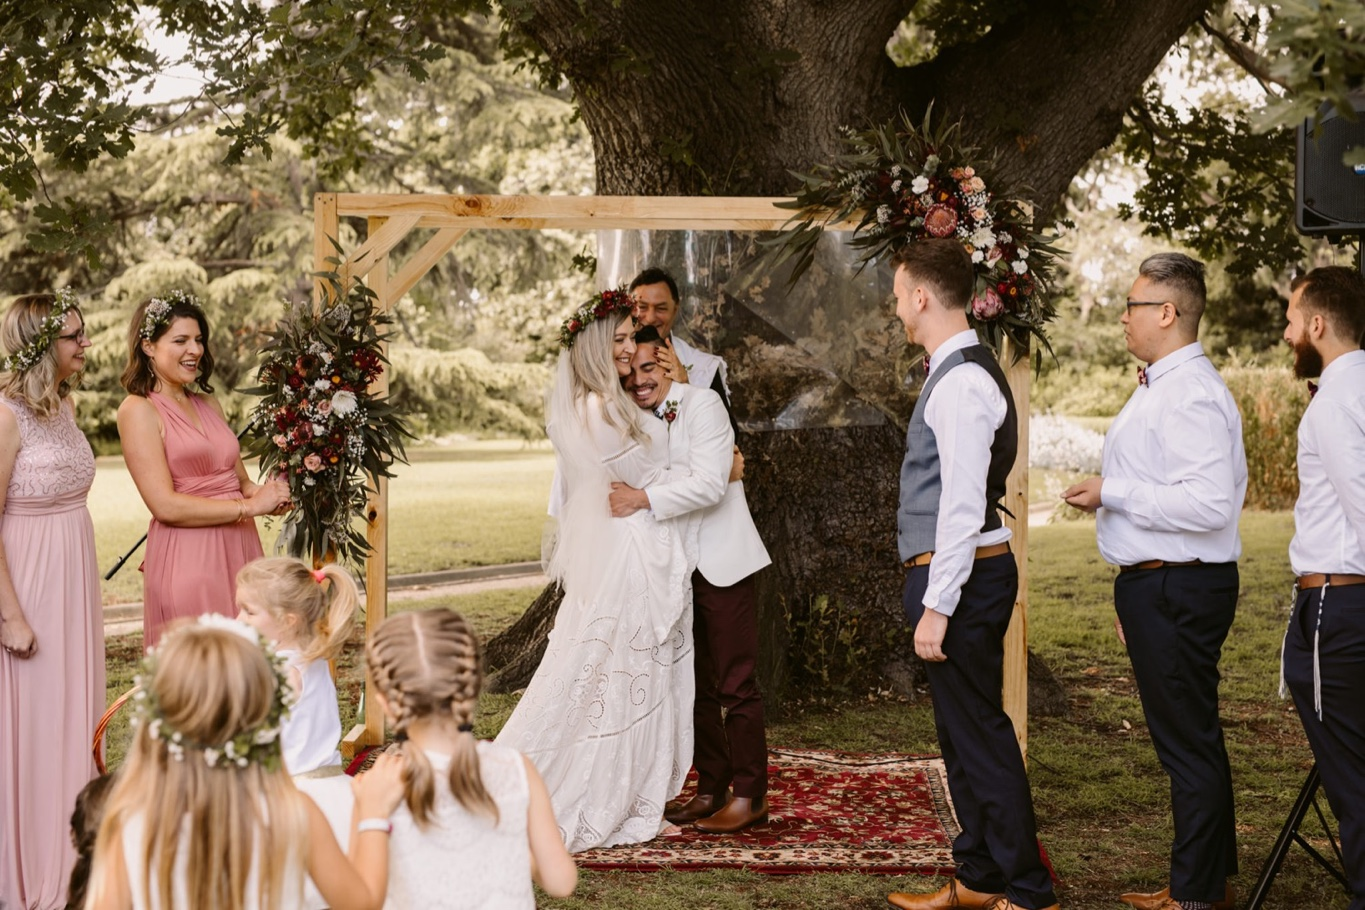 Gather and Tailor Melbourne Wedding Photography-147.jpg